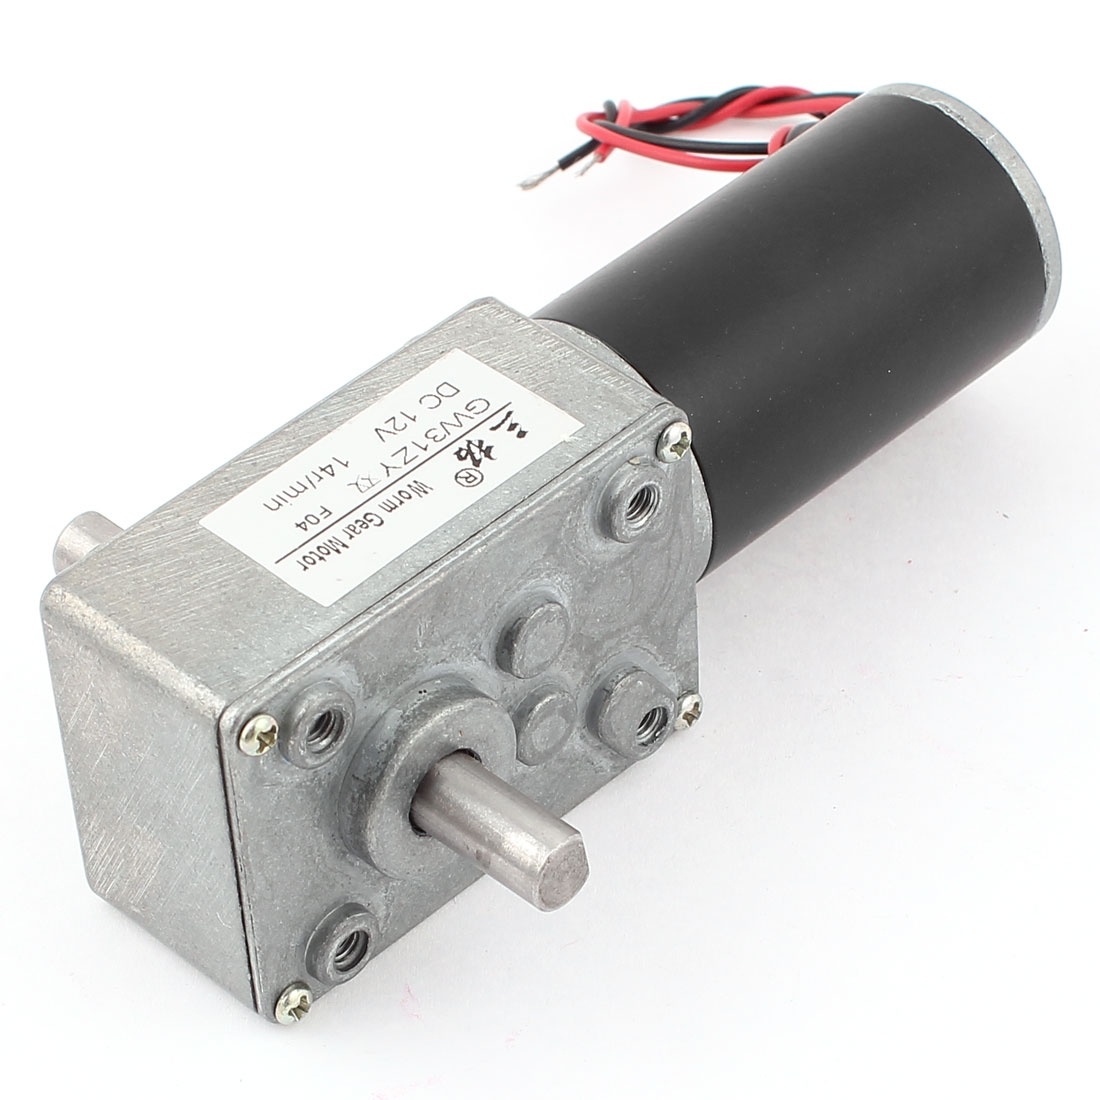 GW31ZY DC 12V 14RPM 8mmx13mm Double Shaft Worm Geared Motor